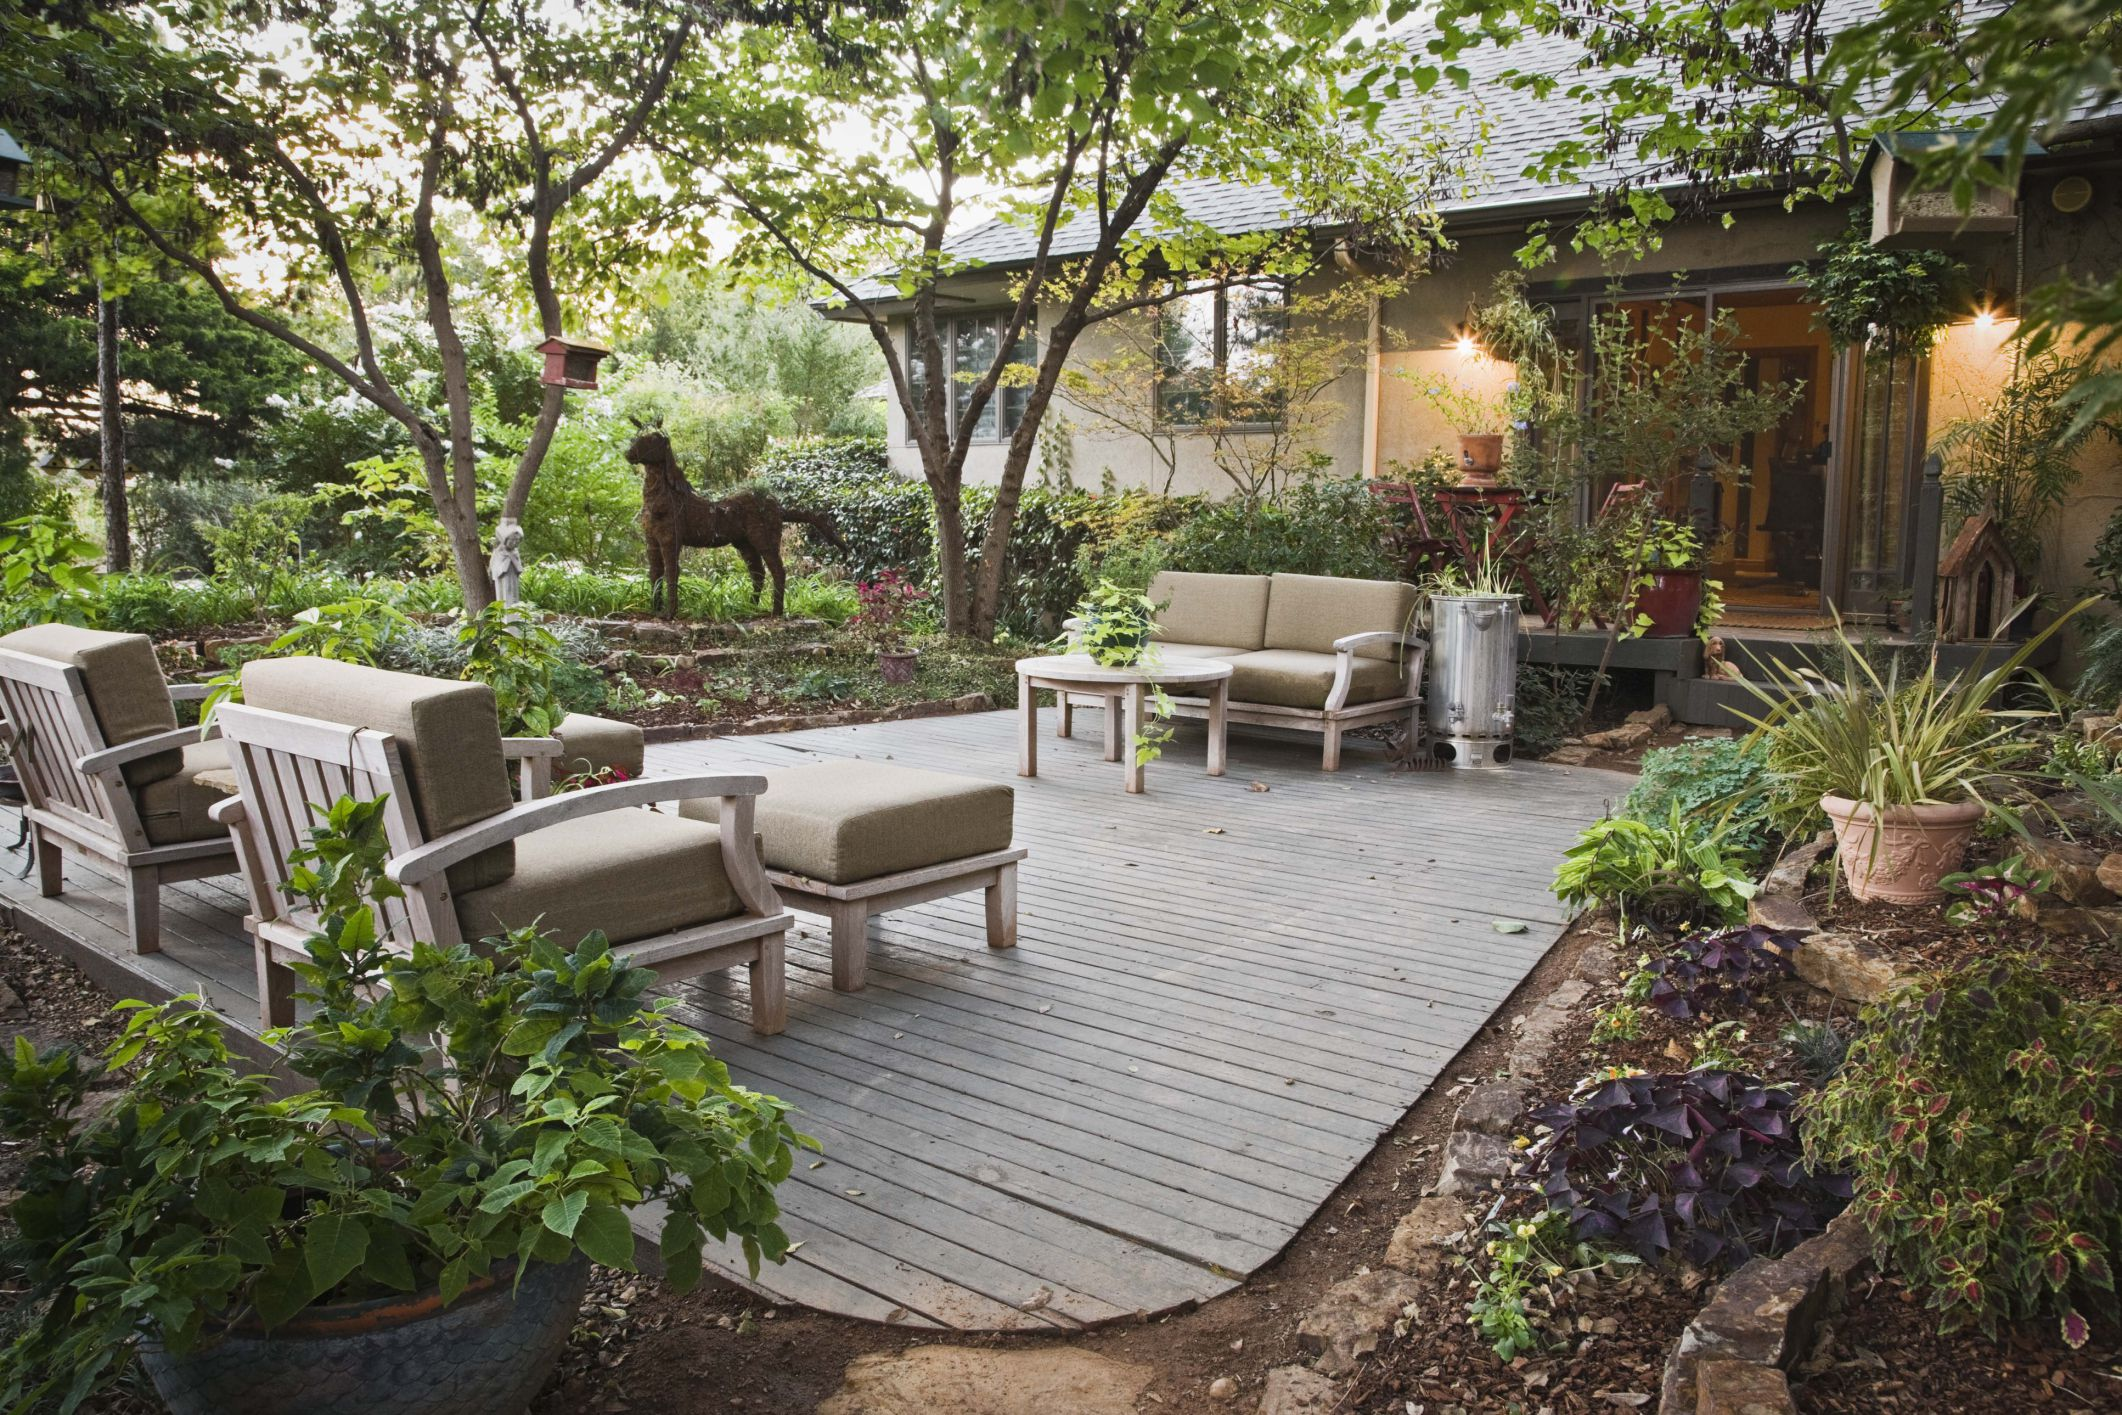 Deck with furniture in back of a single-level house and garden